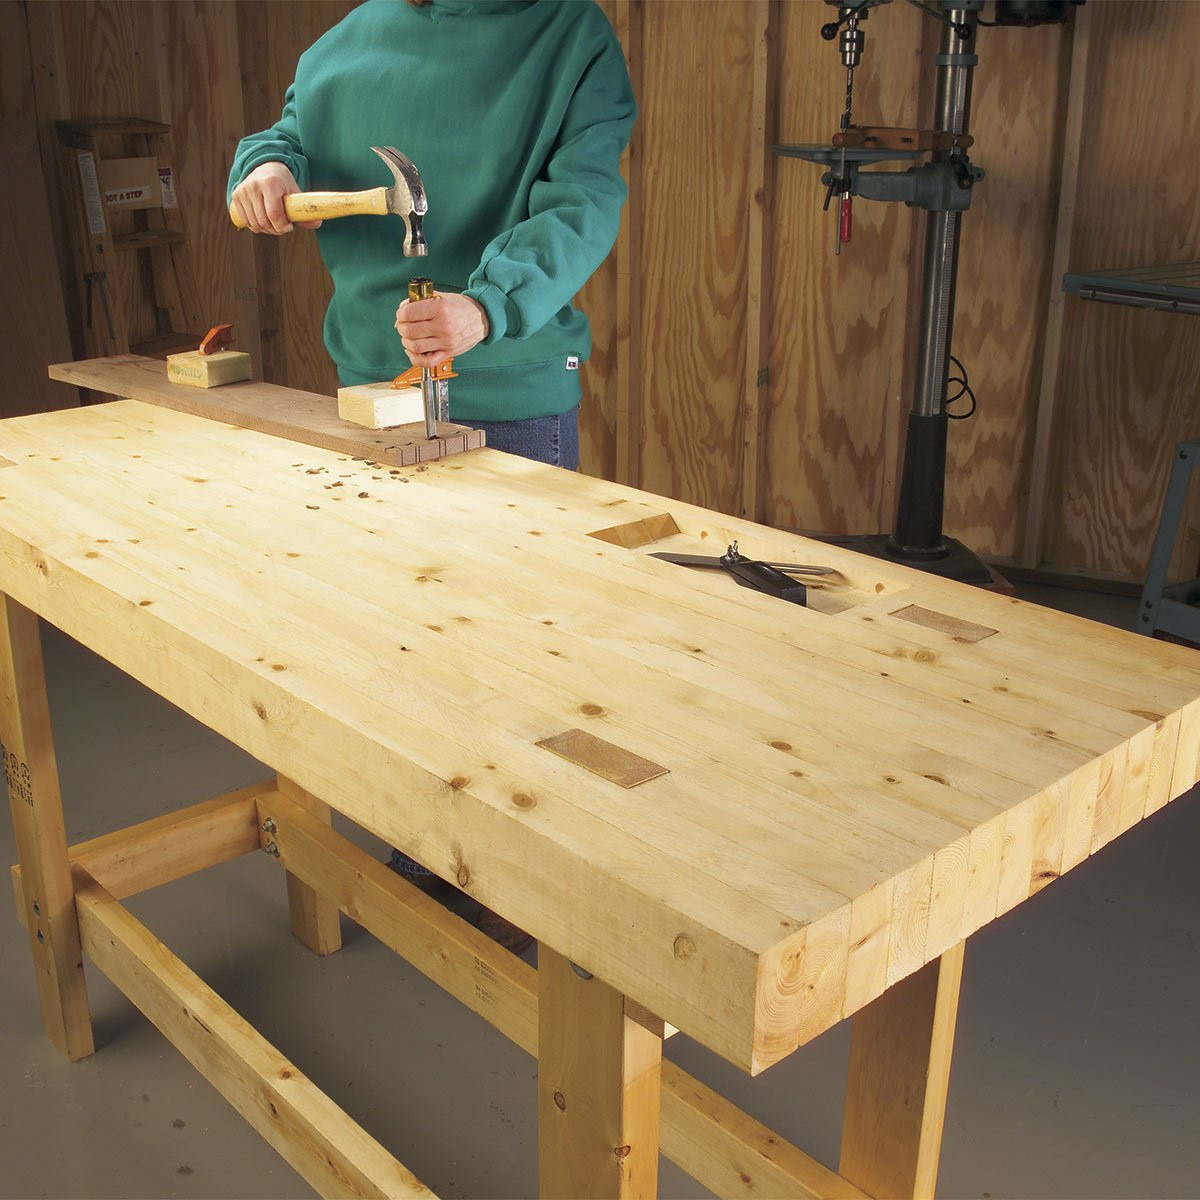 Workbench Plans DIY  12 Super Simple Workbenches You Can Build — The Family